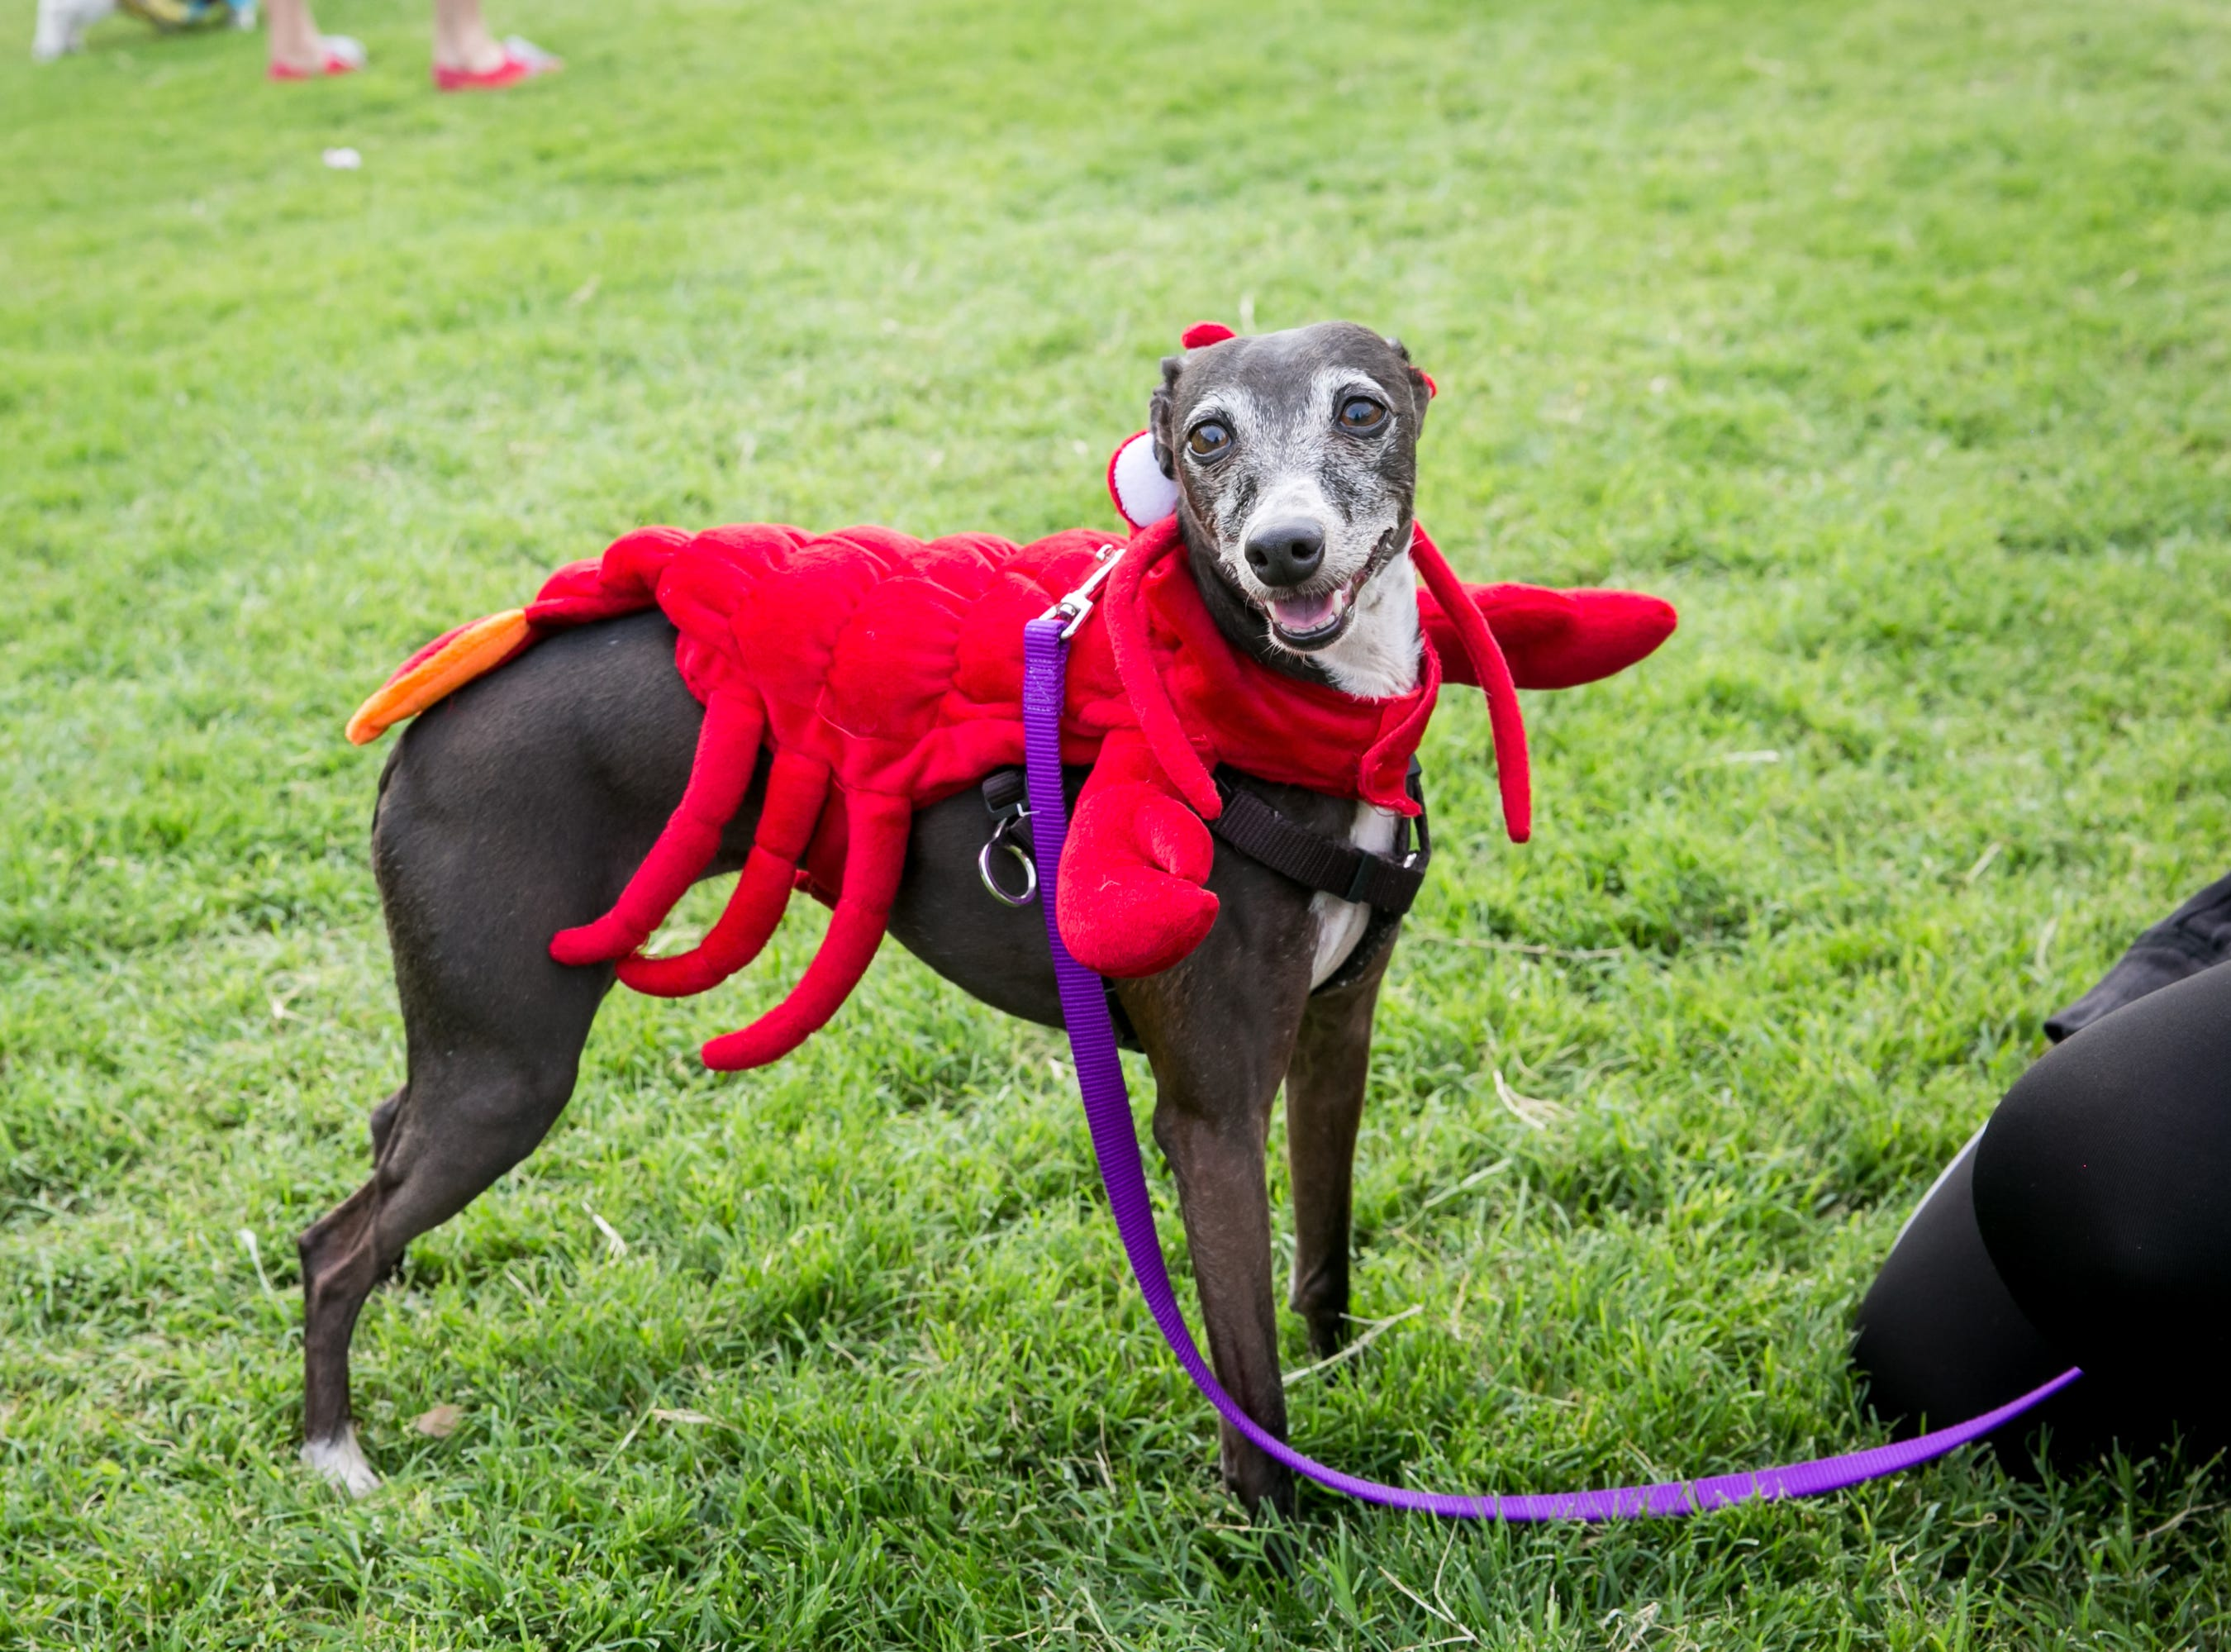 Lobster dog was too cute during Howl-o-Ween at Hance Park on Sunday, October 28, 2018.